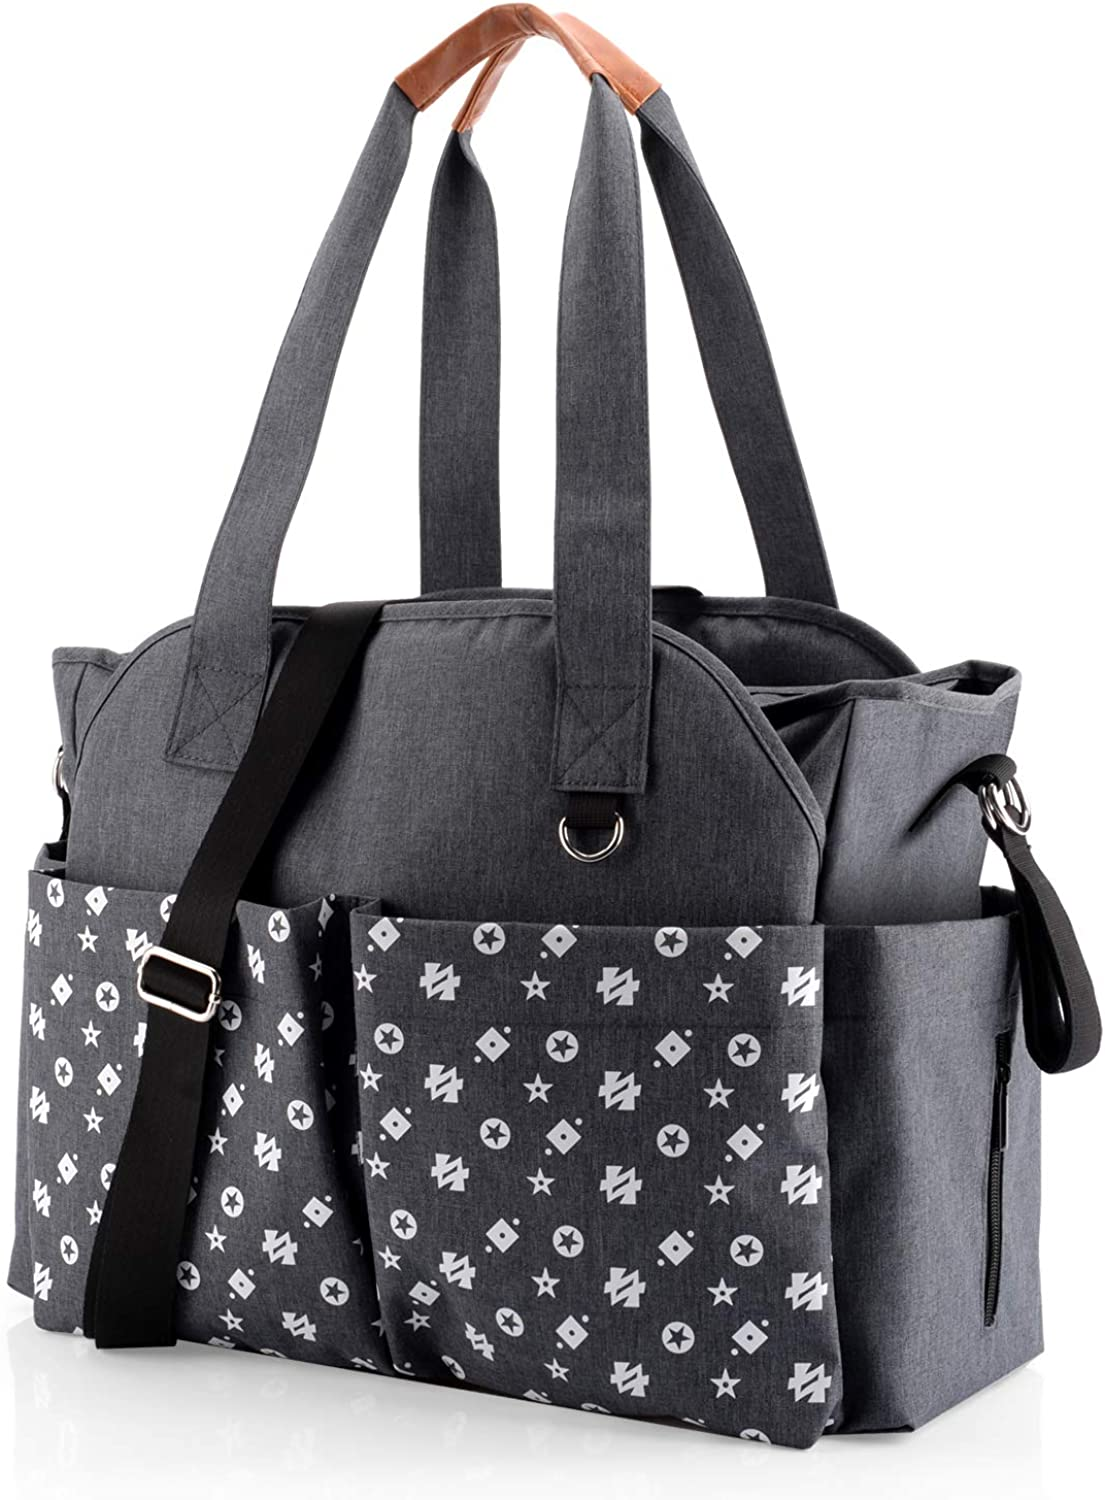 Diaper Tote Bag - Large Travel Baby Bags for Mom & Dad with Insulated Pockets, Wipes Pocket, Waterproof Material, Stroller Straps, Shoulder Strap (Grey)